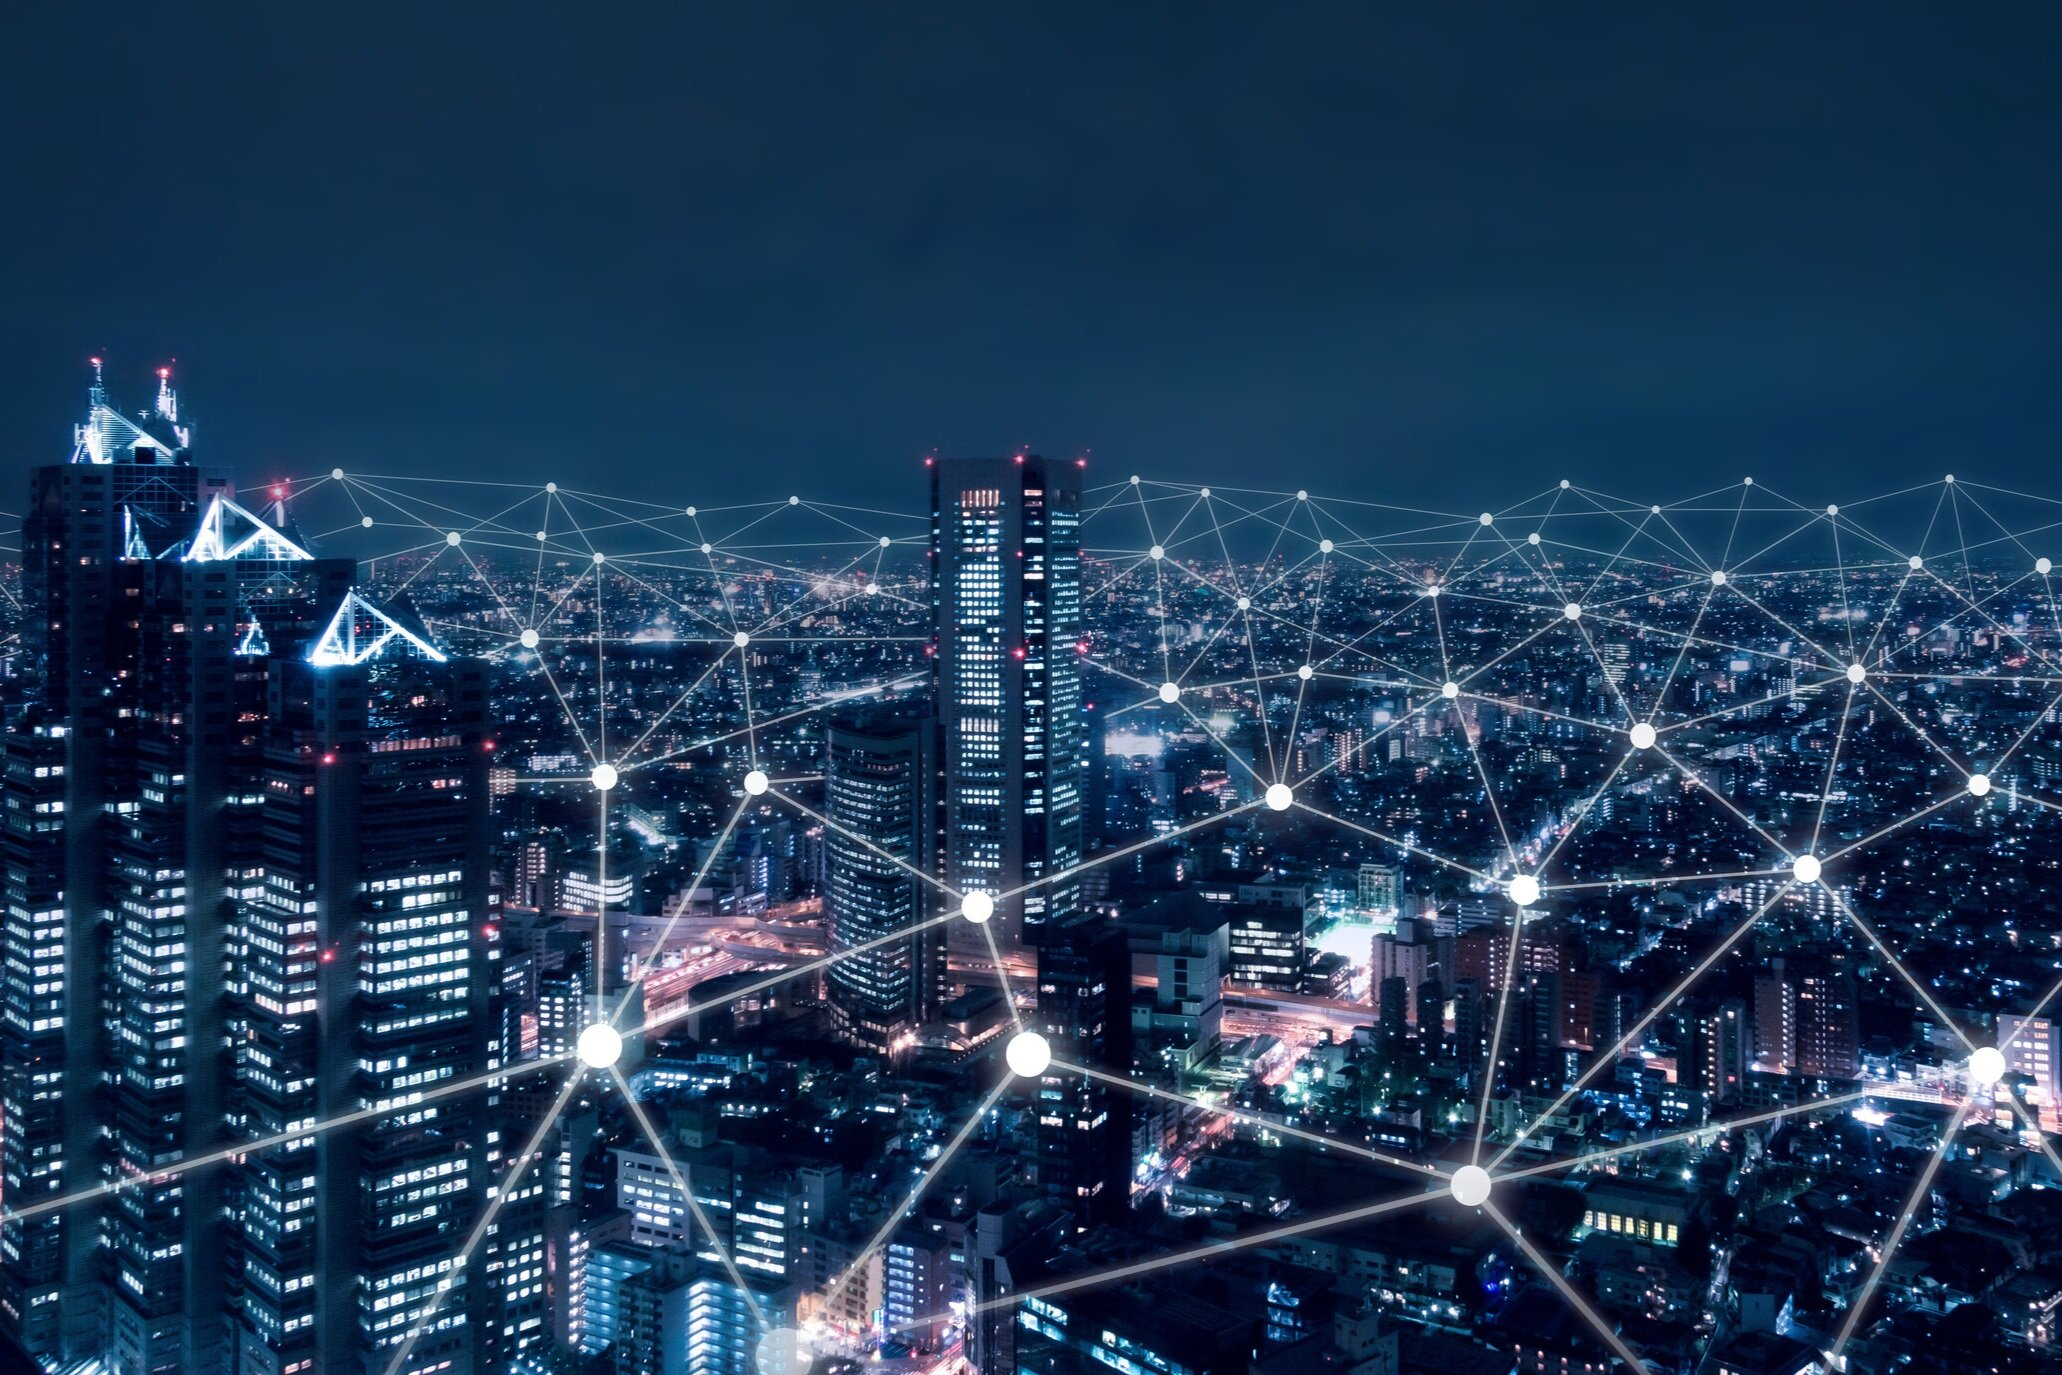 44 Cities, 34,000 Devices - Mesh 4G networks have been installed all over the United Kingdom are are currently providing networked communications to 44 towns and cities.